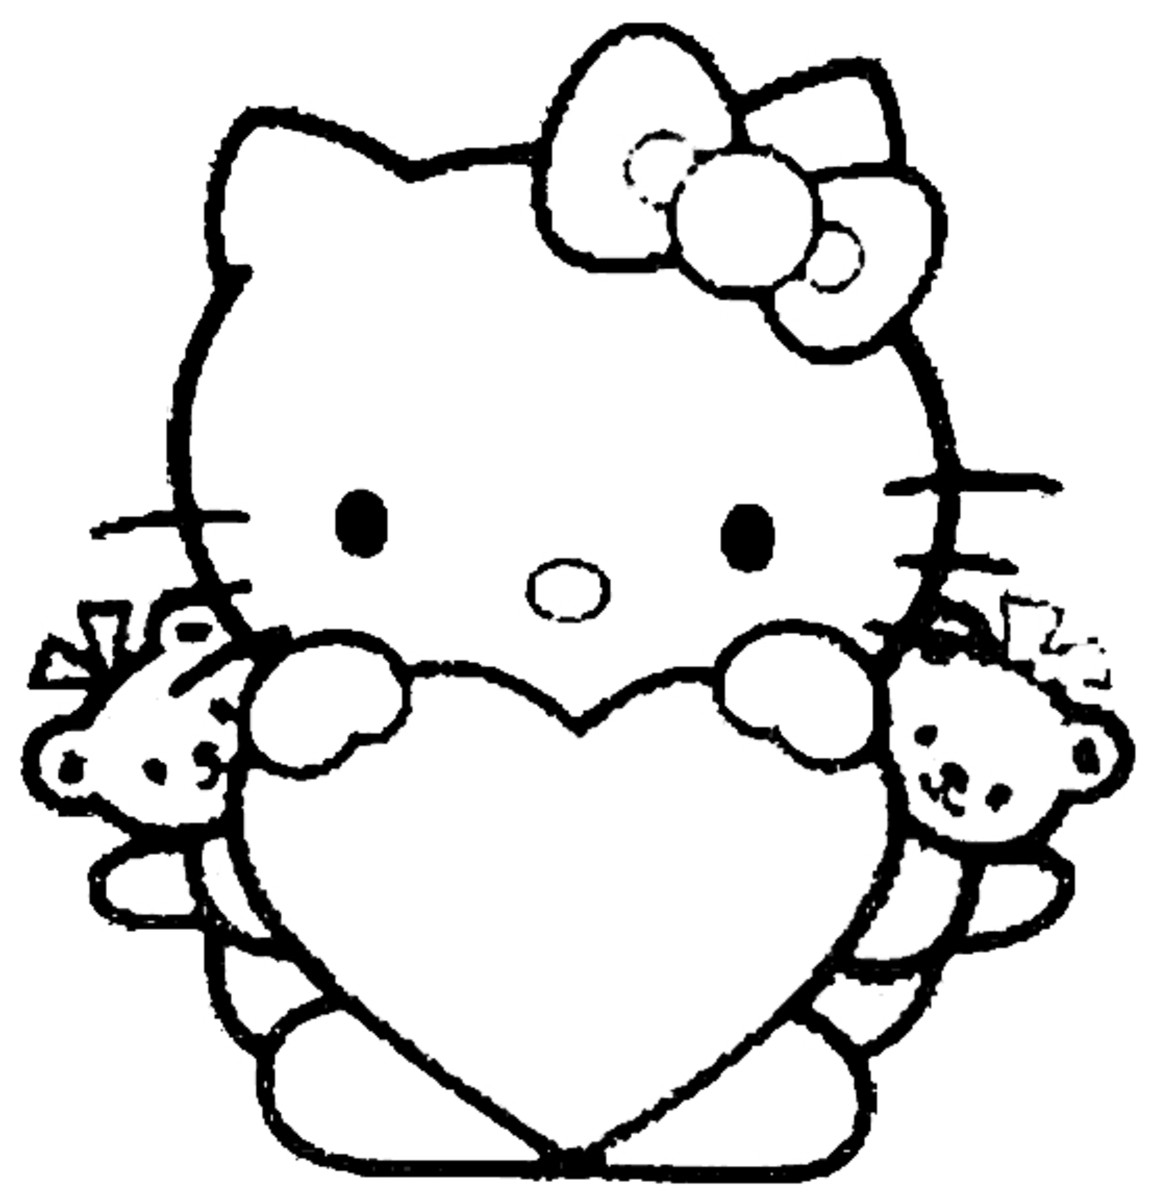 Heart coloring image of Hello Kitty